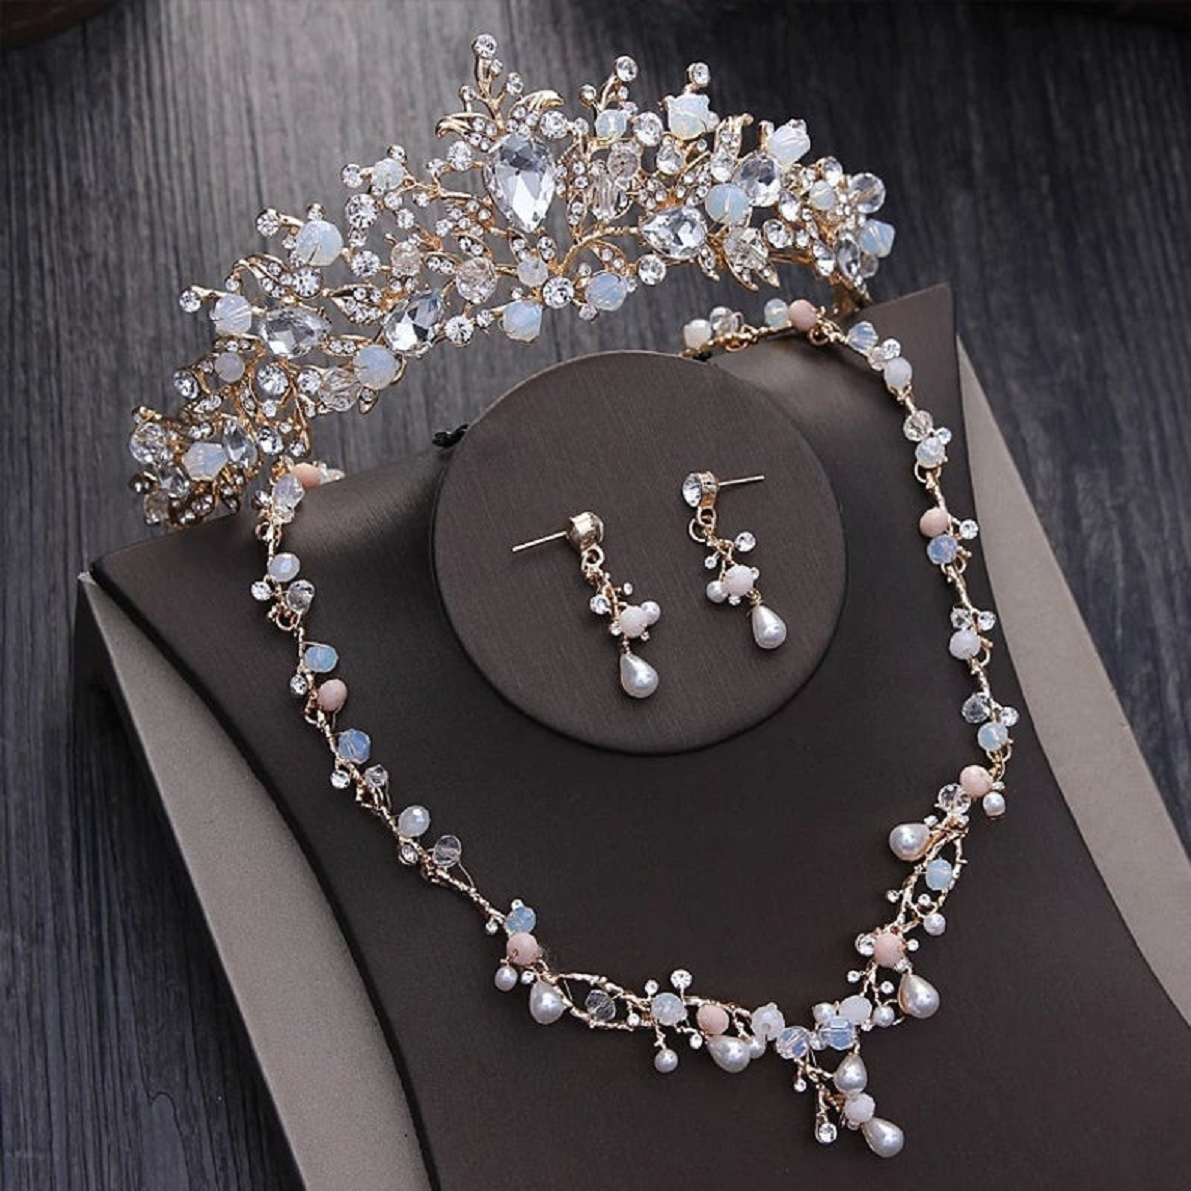 Bling wedding accessories Glittering Noble Crystal Beads Pearl Bridal Jewelry Sets